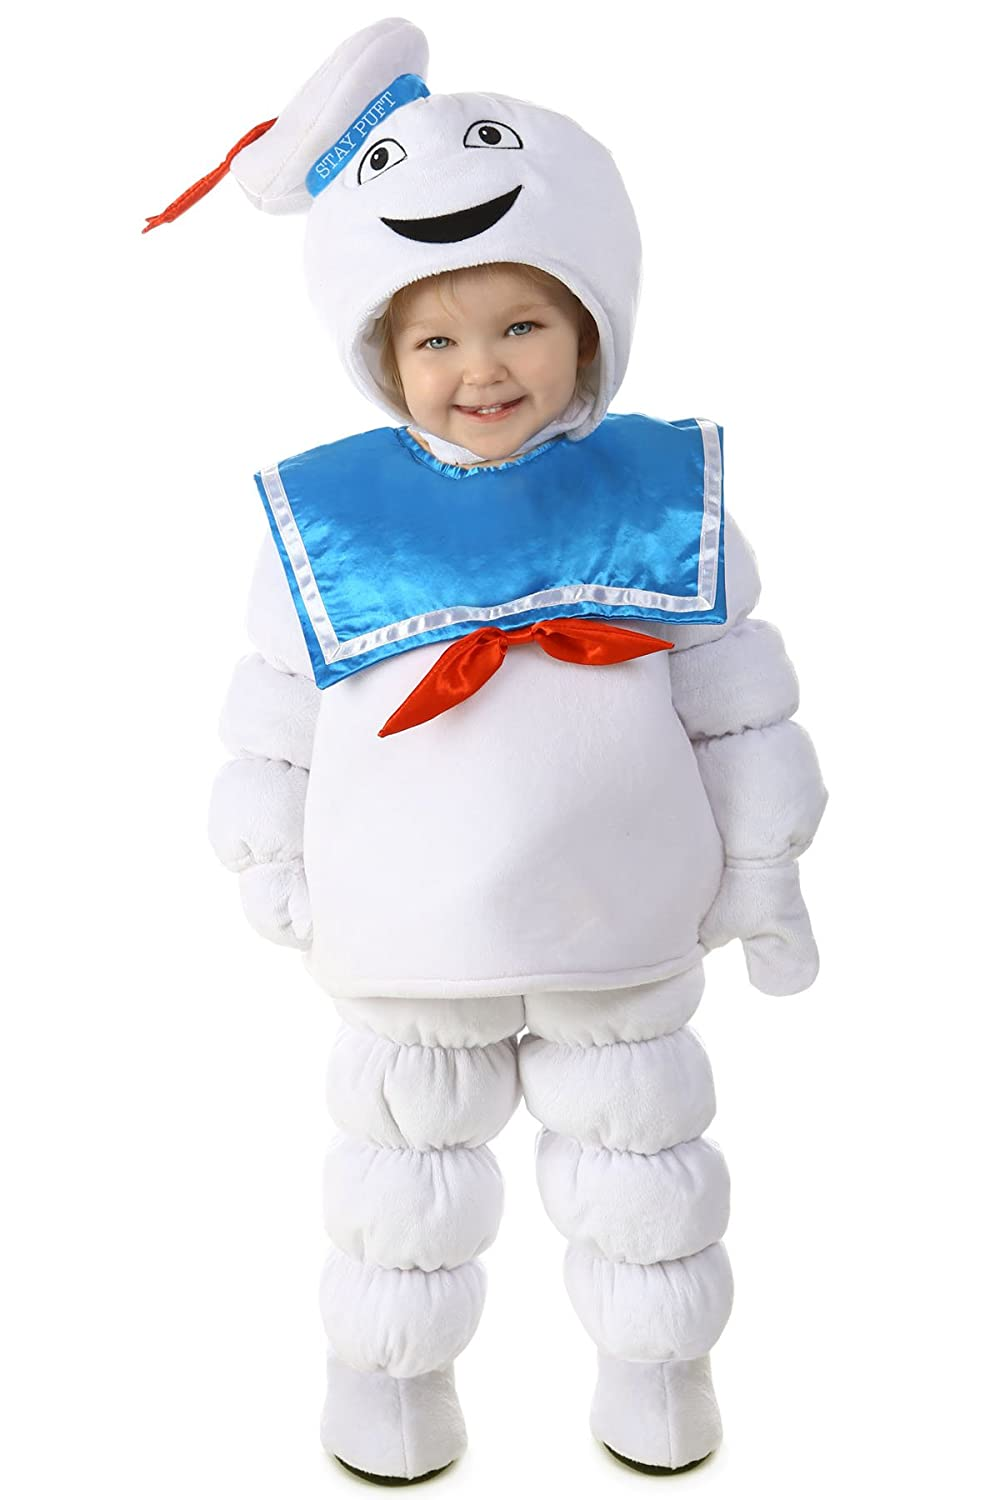 Princess Paradise Baby Ghostbusters Stay Puft Deluxe Costume Princess Paradise Costumes 5057-1